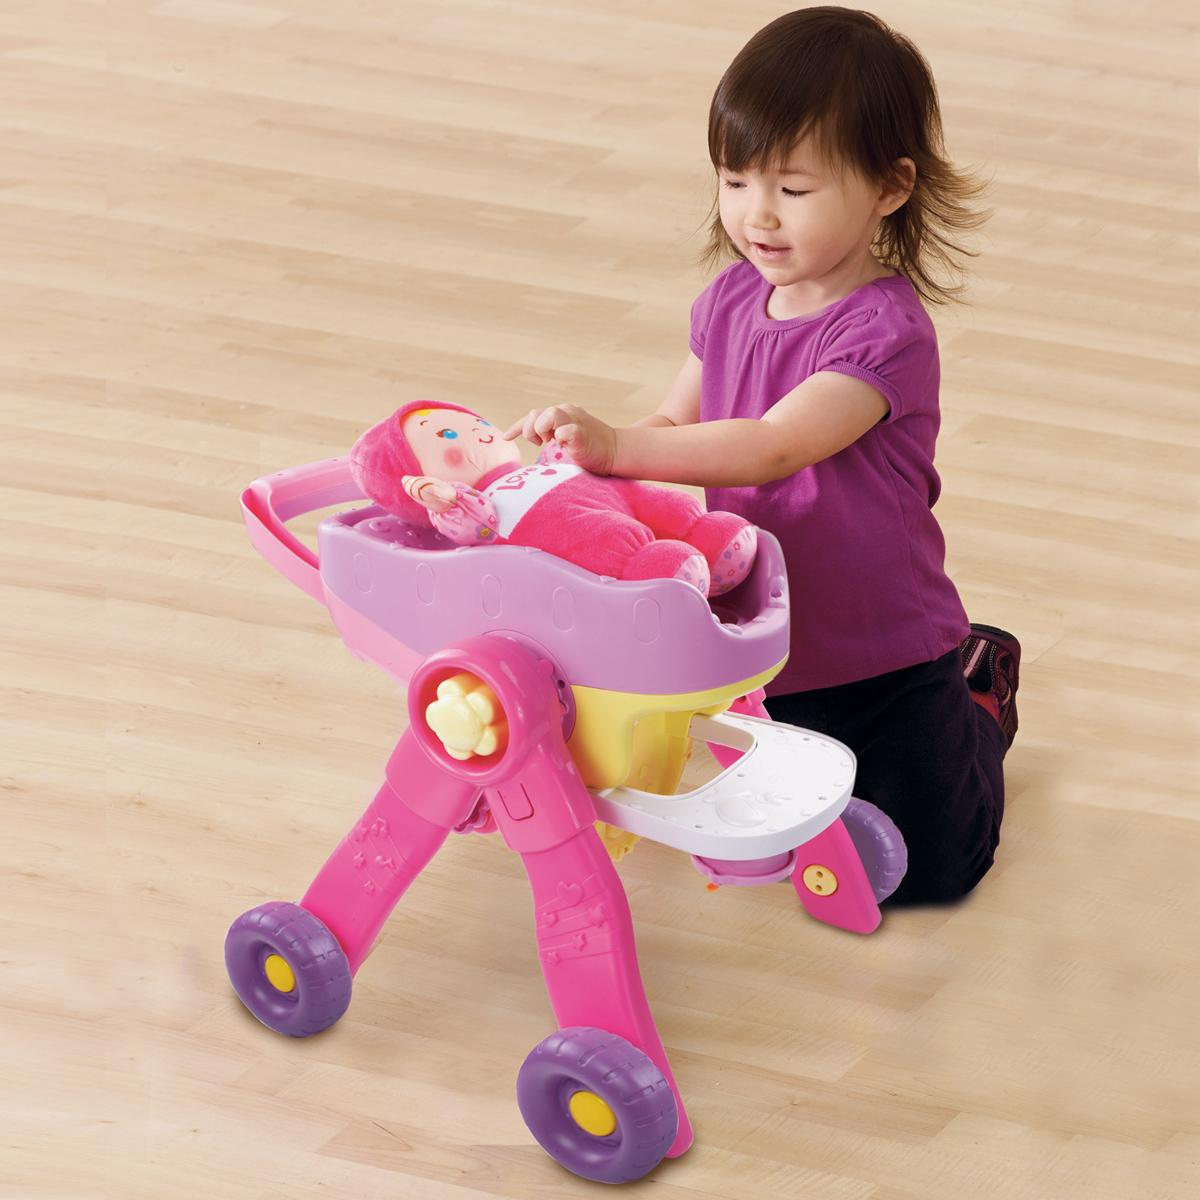 Play peek-a-boo with the Baby Amaze Peek & Learn Doll by ...